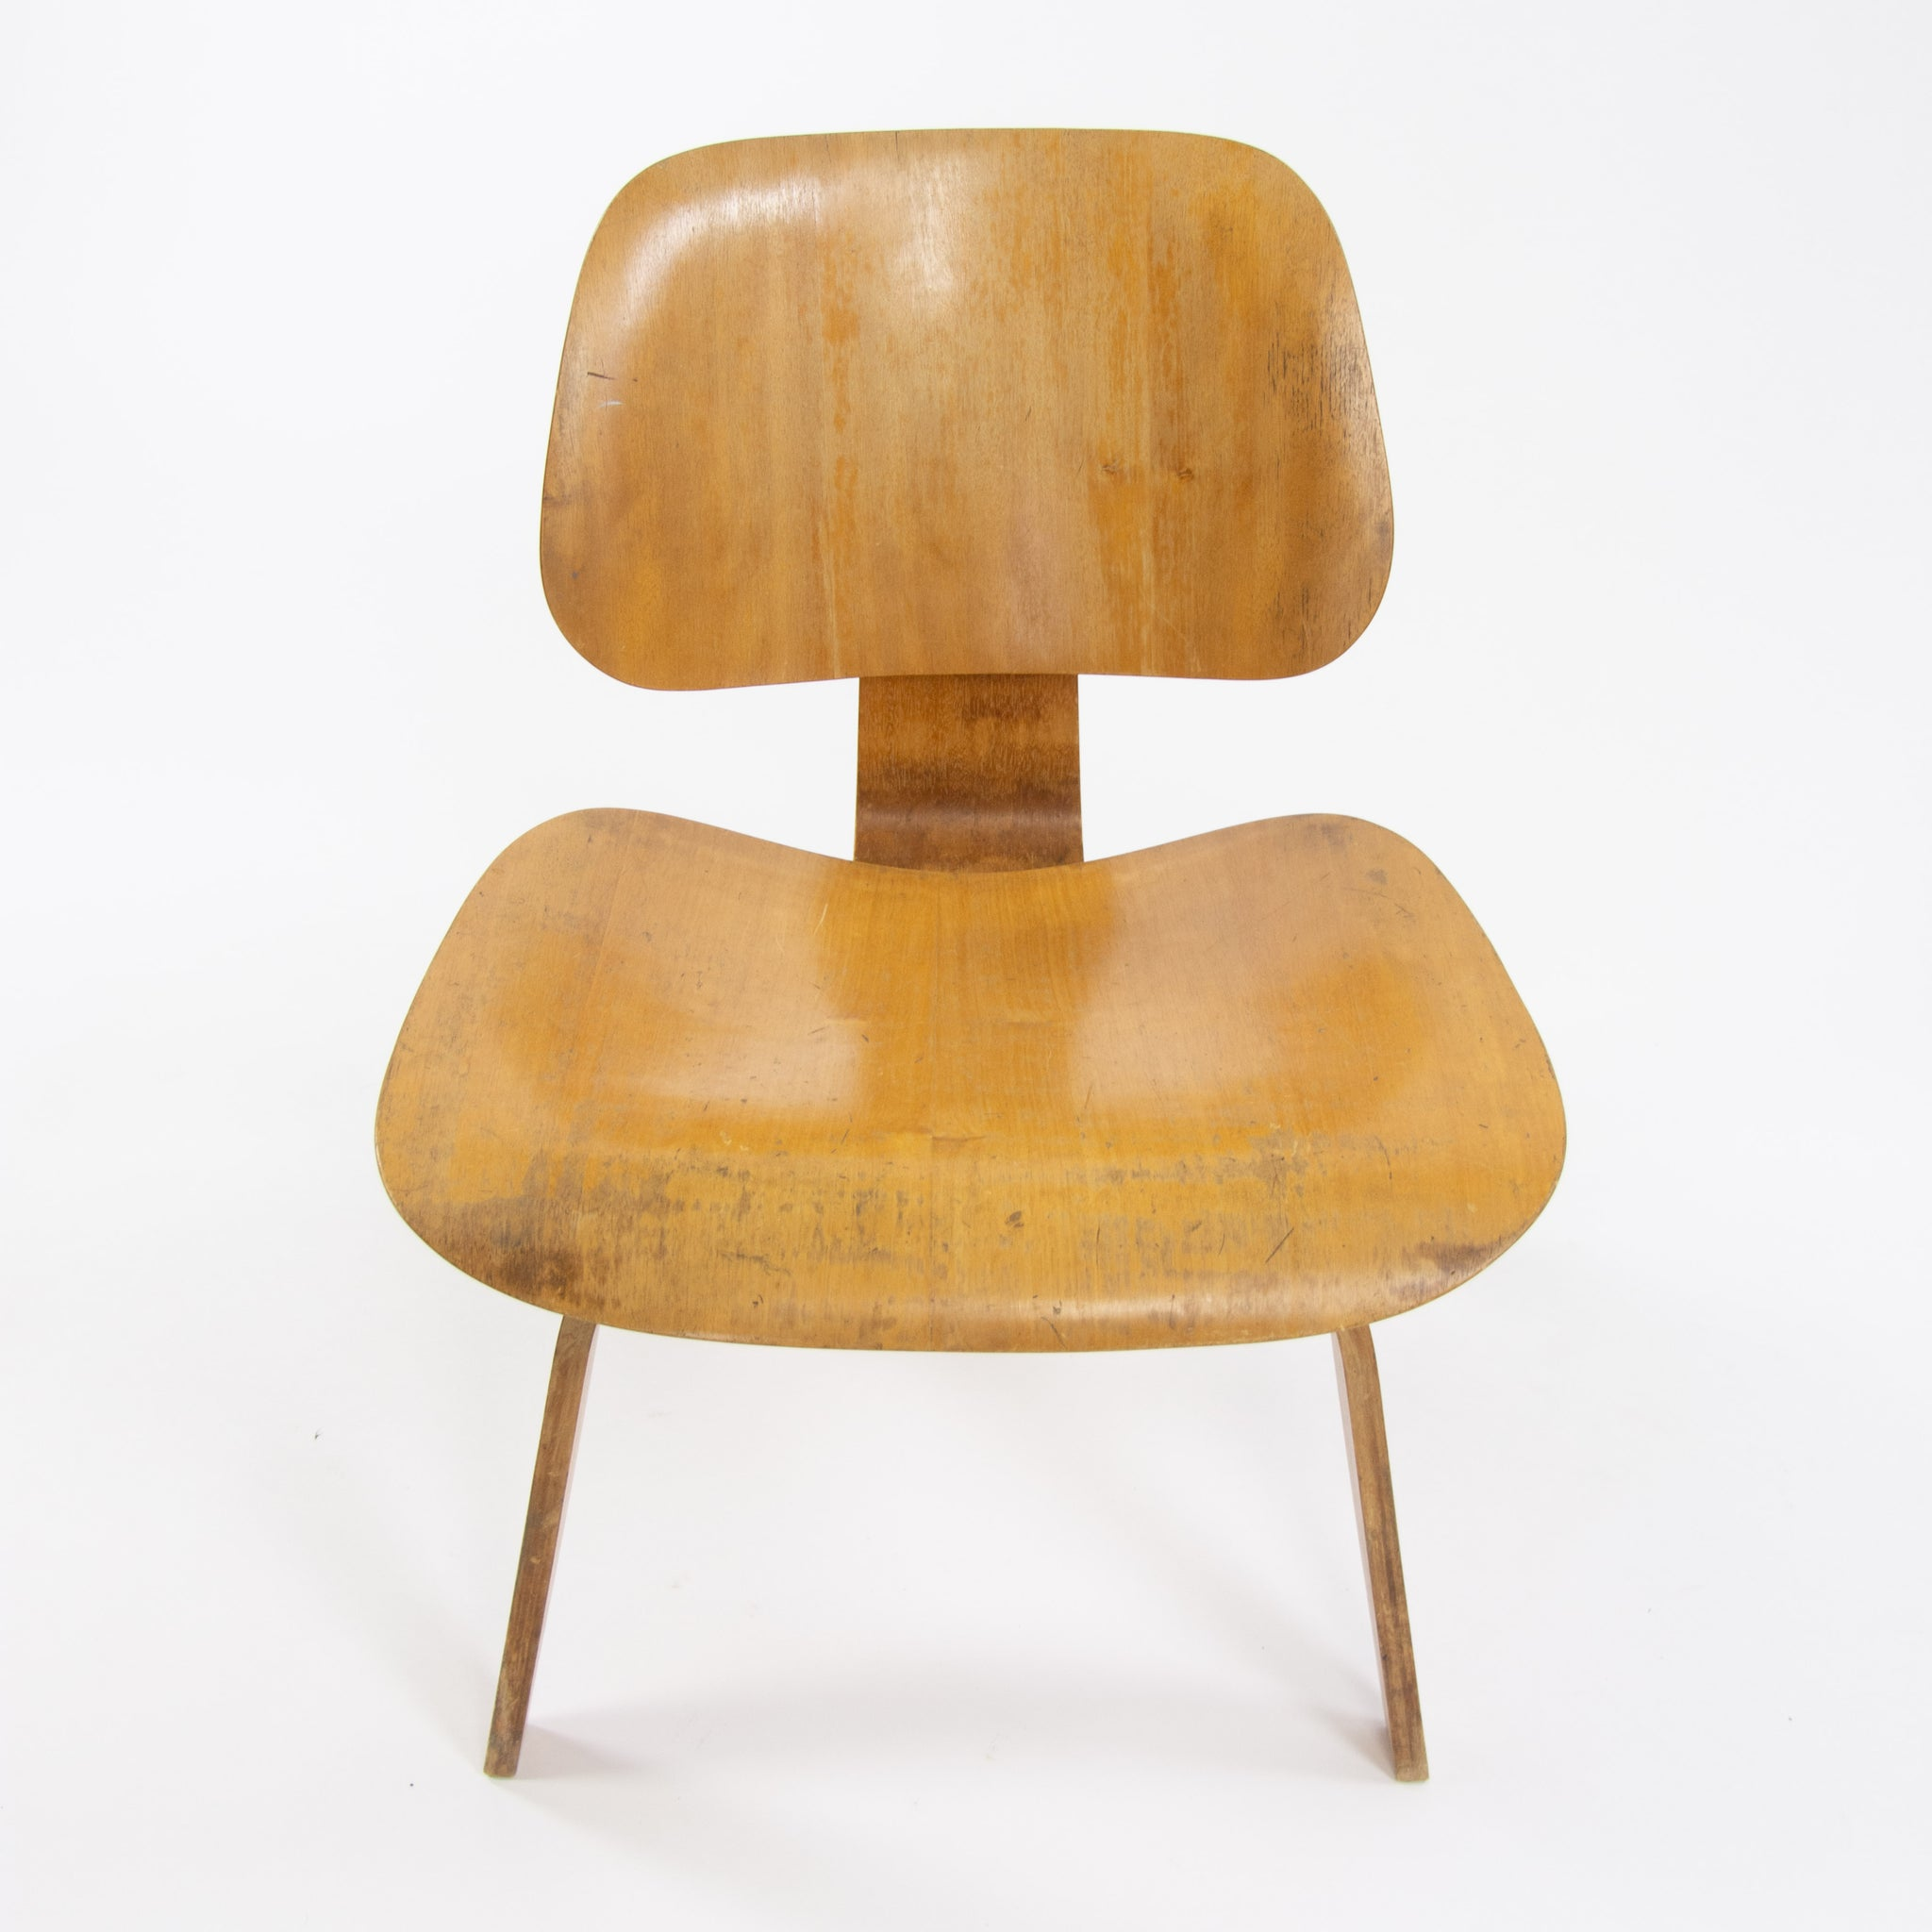 1946 Charles and Ray Eames Evans Herman Miller LCW Lounge Chair Wood Ash